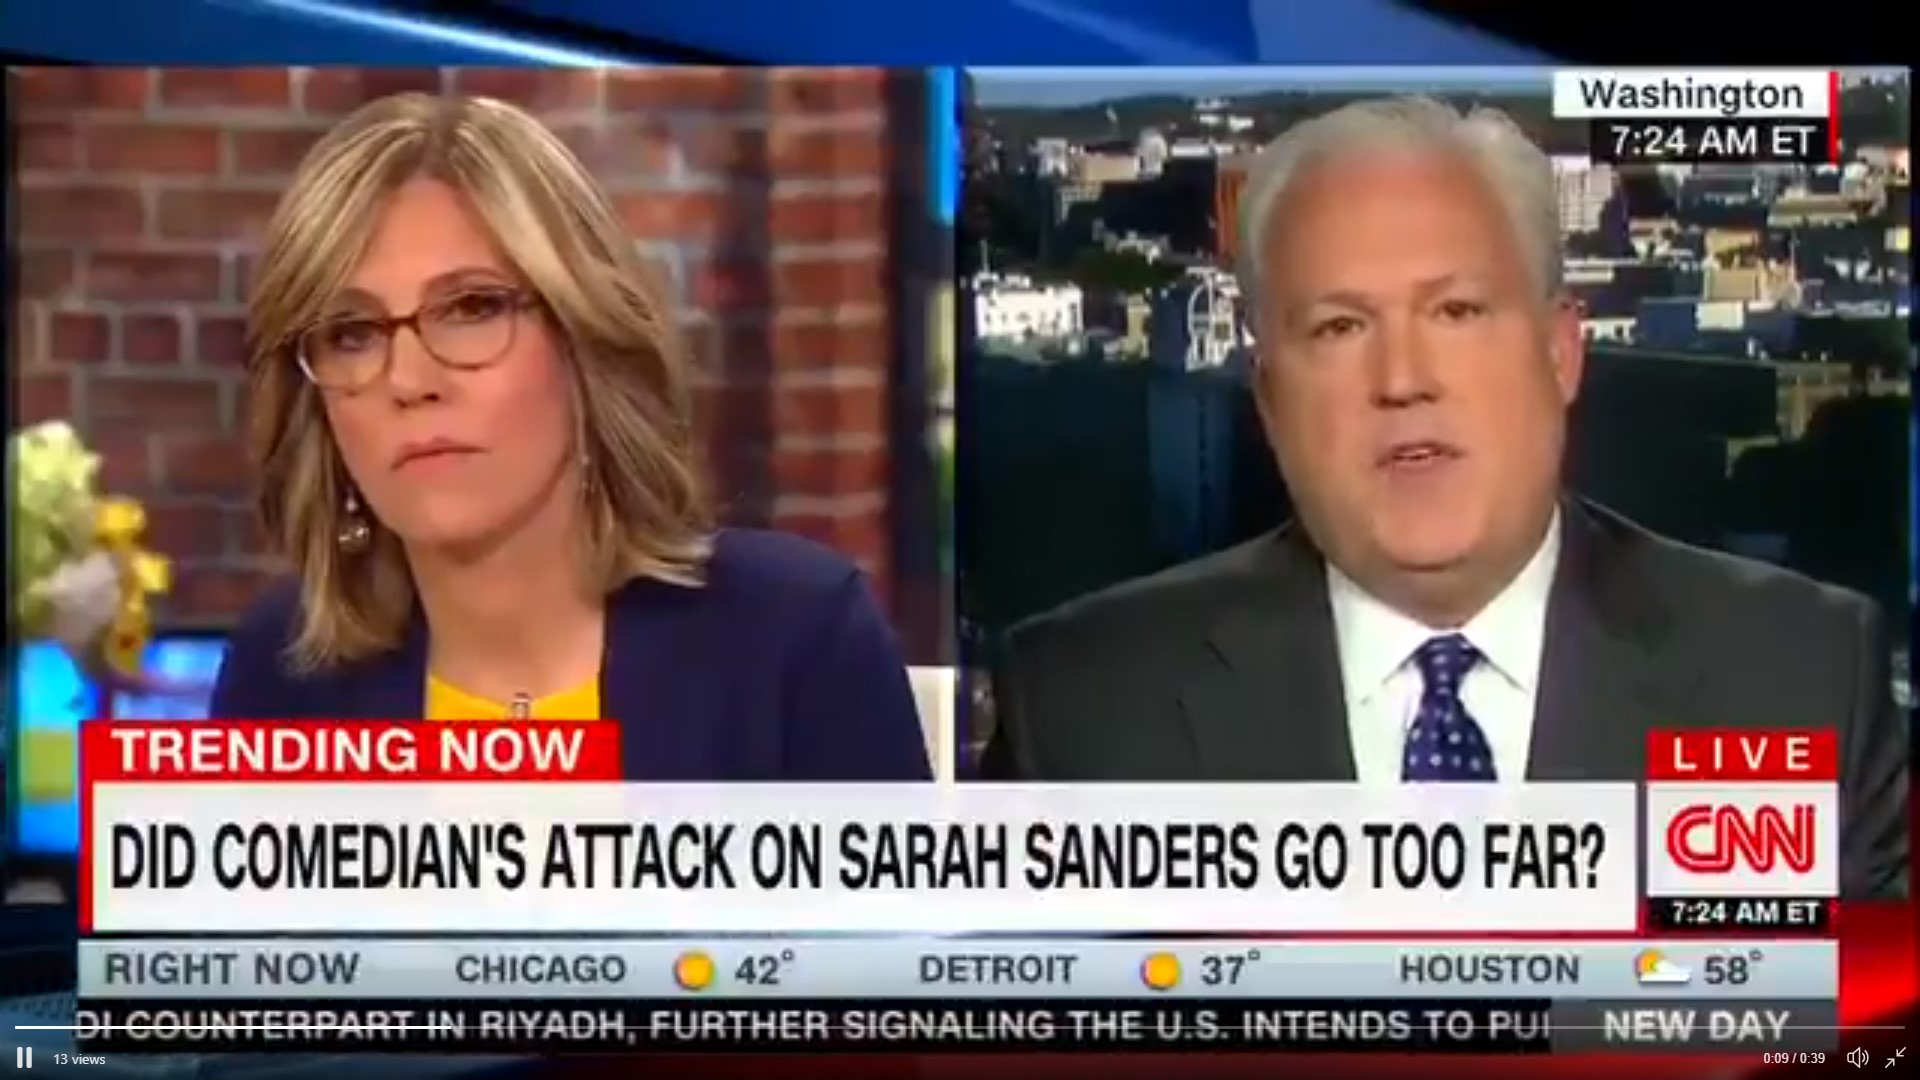 CPAC Organizer Matt Schlapp: Journalists Shouldn't 'Say That The President Or His Spokesperson Is Lying'